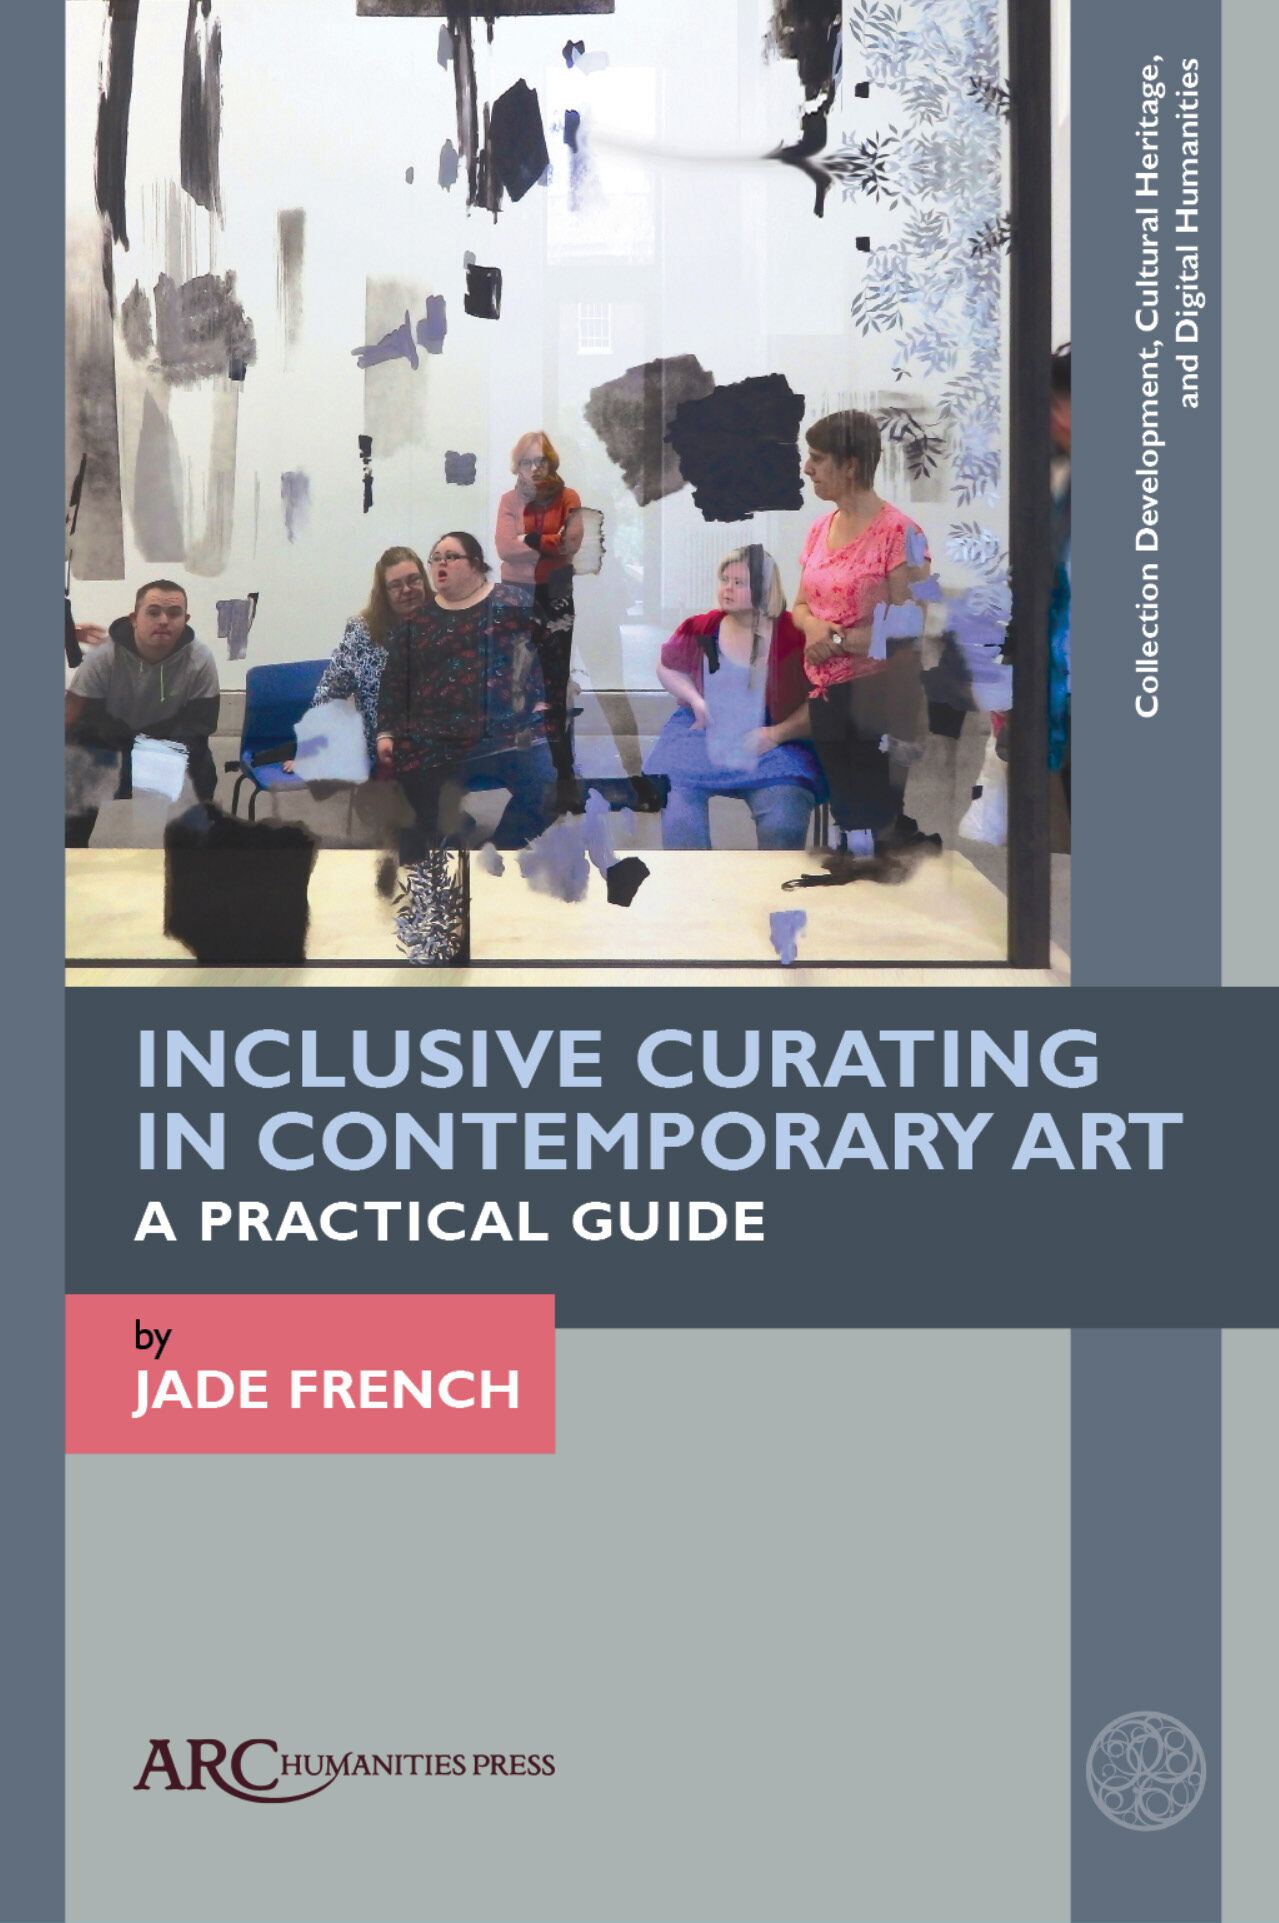 Рецензия на книгу French J (2020). Inclusive Curating in Contemporary Art: A Practical Guide